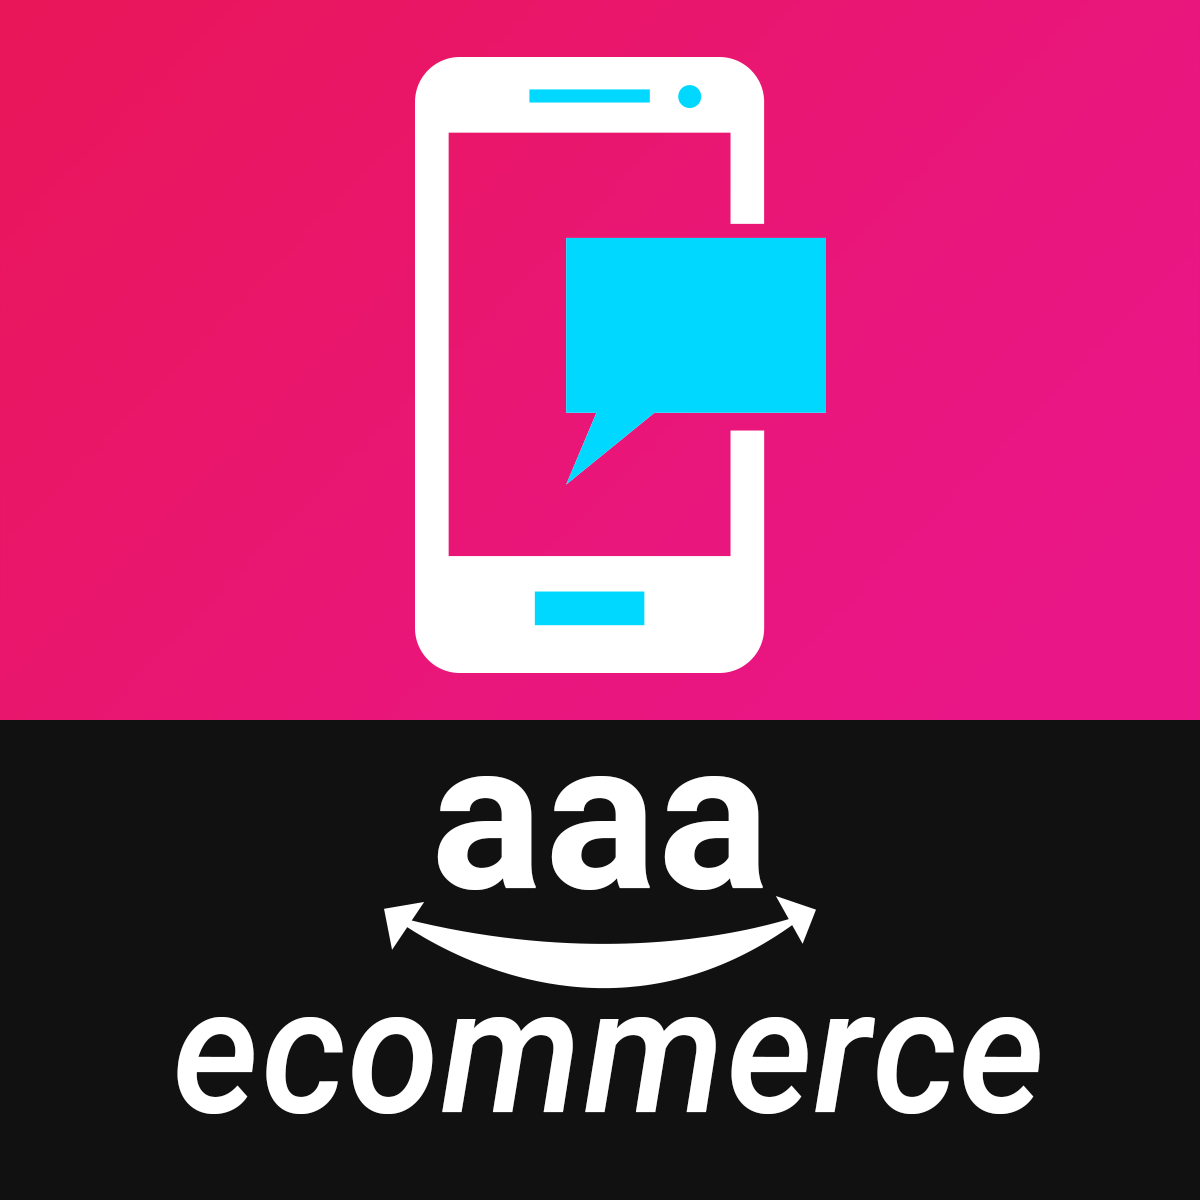 Shopify Testimonials Apps by Aaaecommerce inc